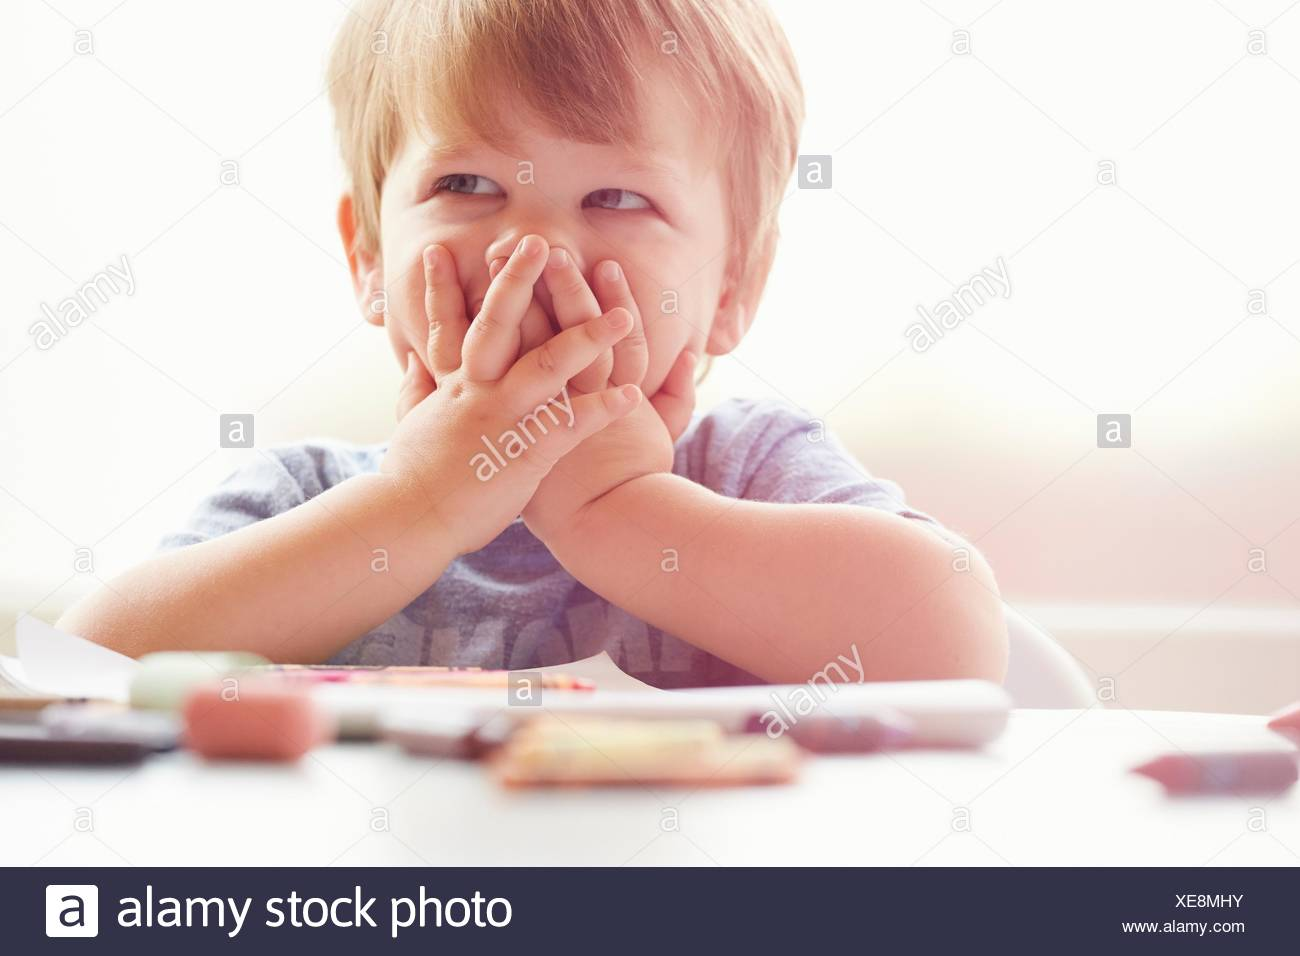 Boy sitting at table resting on elbows, covering mouth with hands, looking away Stock Photo